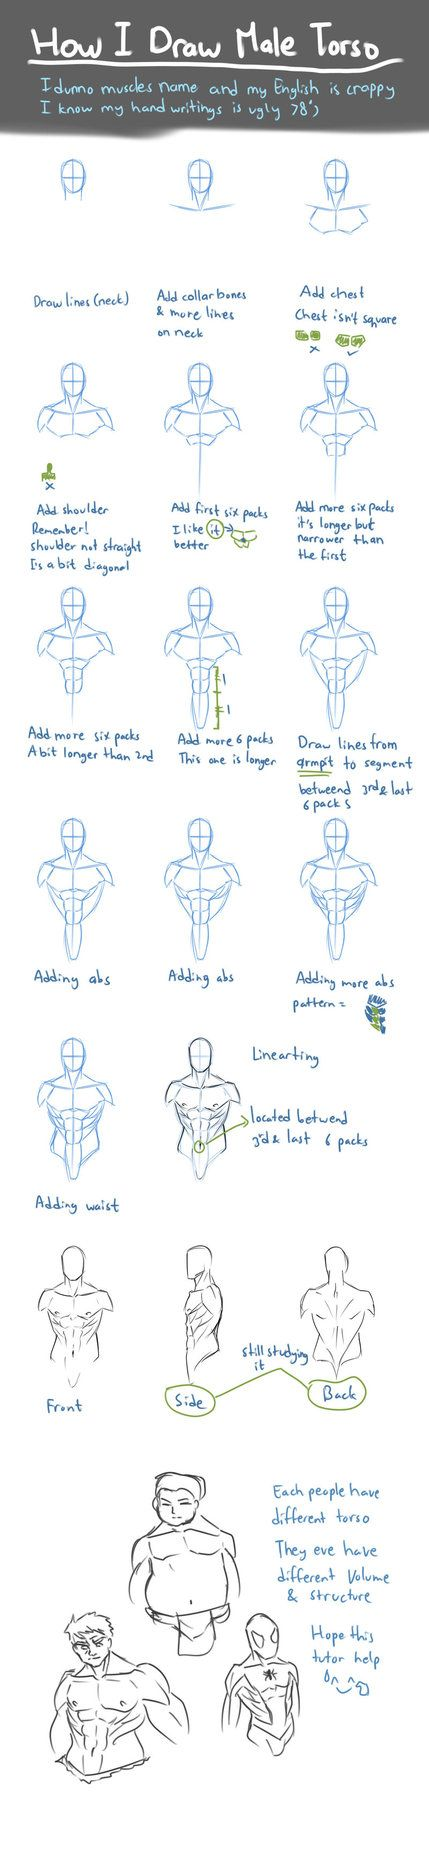 How I Draw Male Torso by nursury0 | skeches | Pinterest | Male torso ...